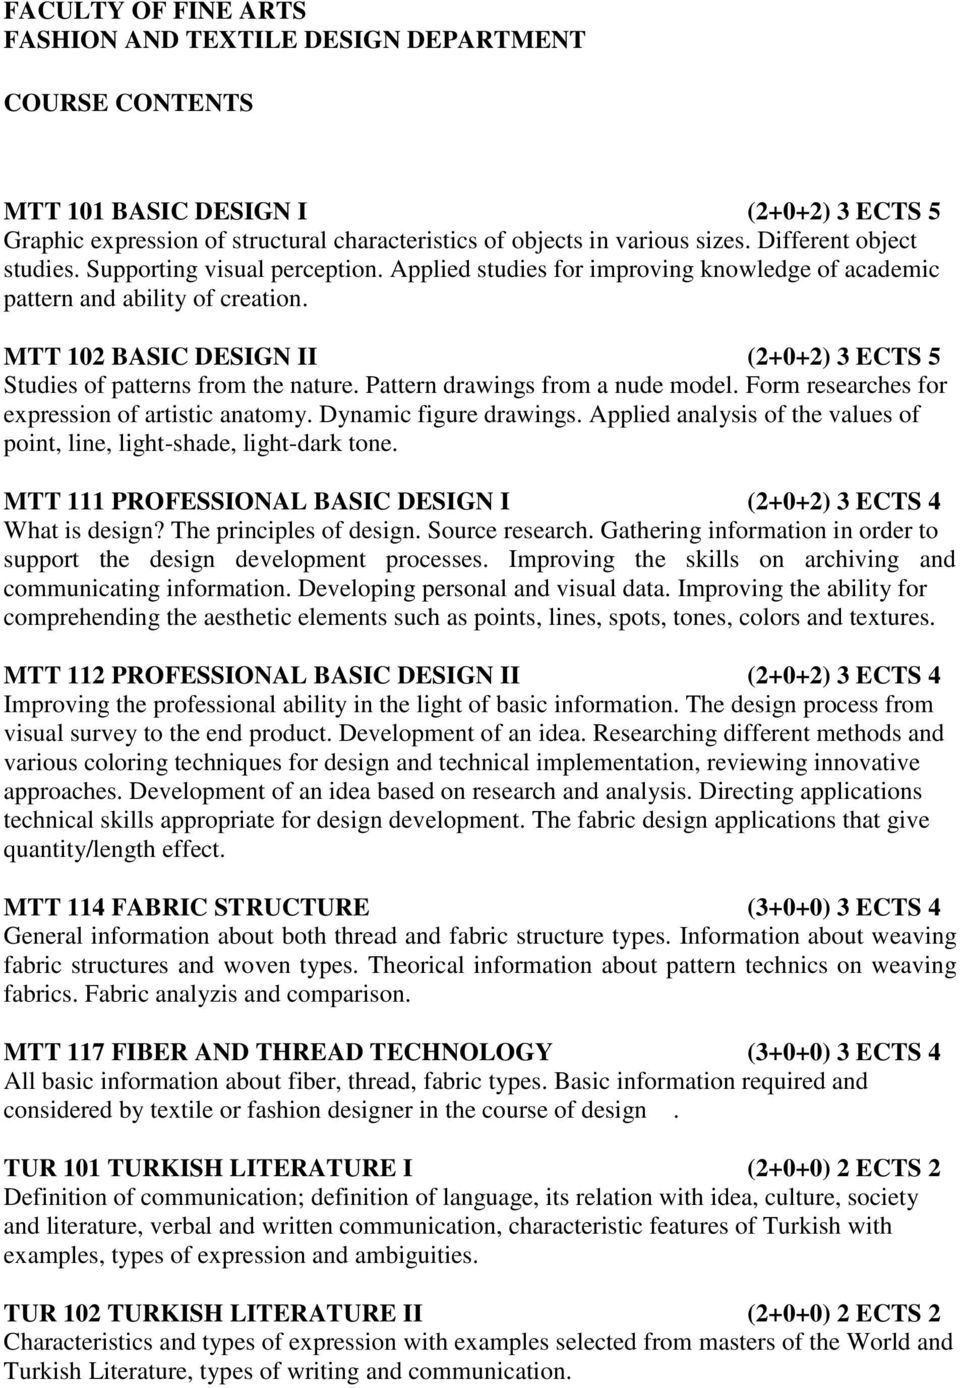 Faculty Of Fine Arts Fashion And Textile Design Department Course Contents Pdf Free Download